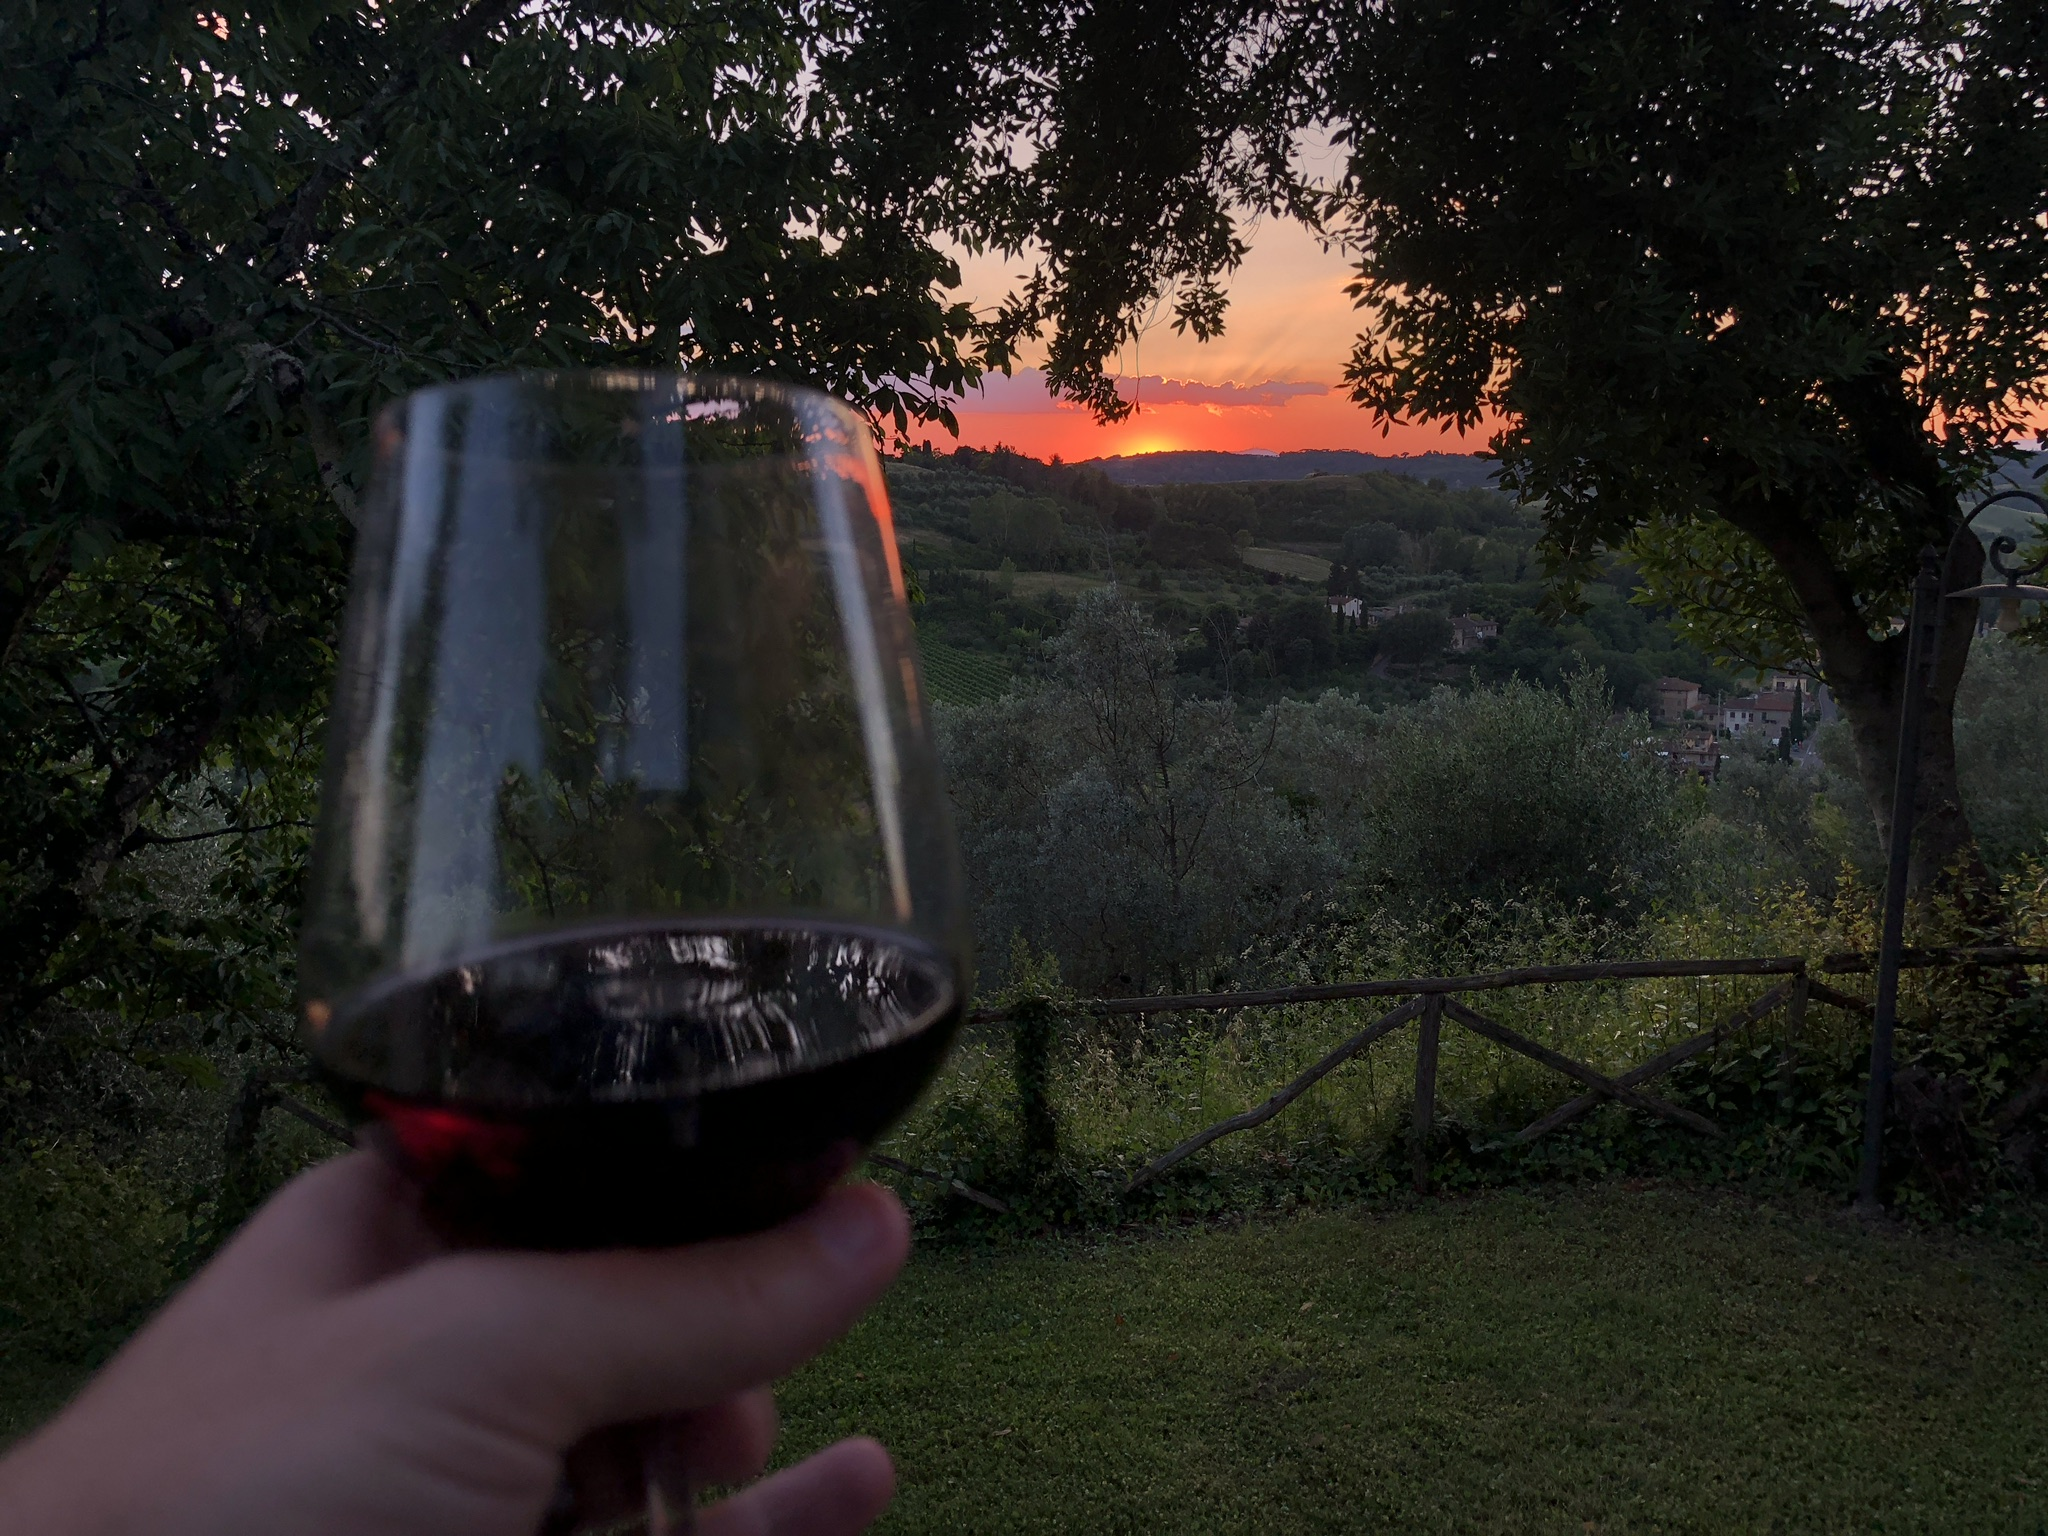 Red wine in Tuscany